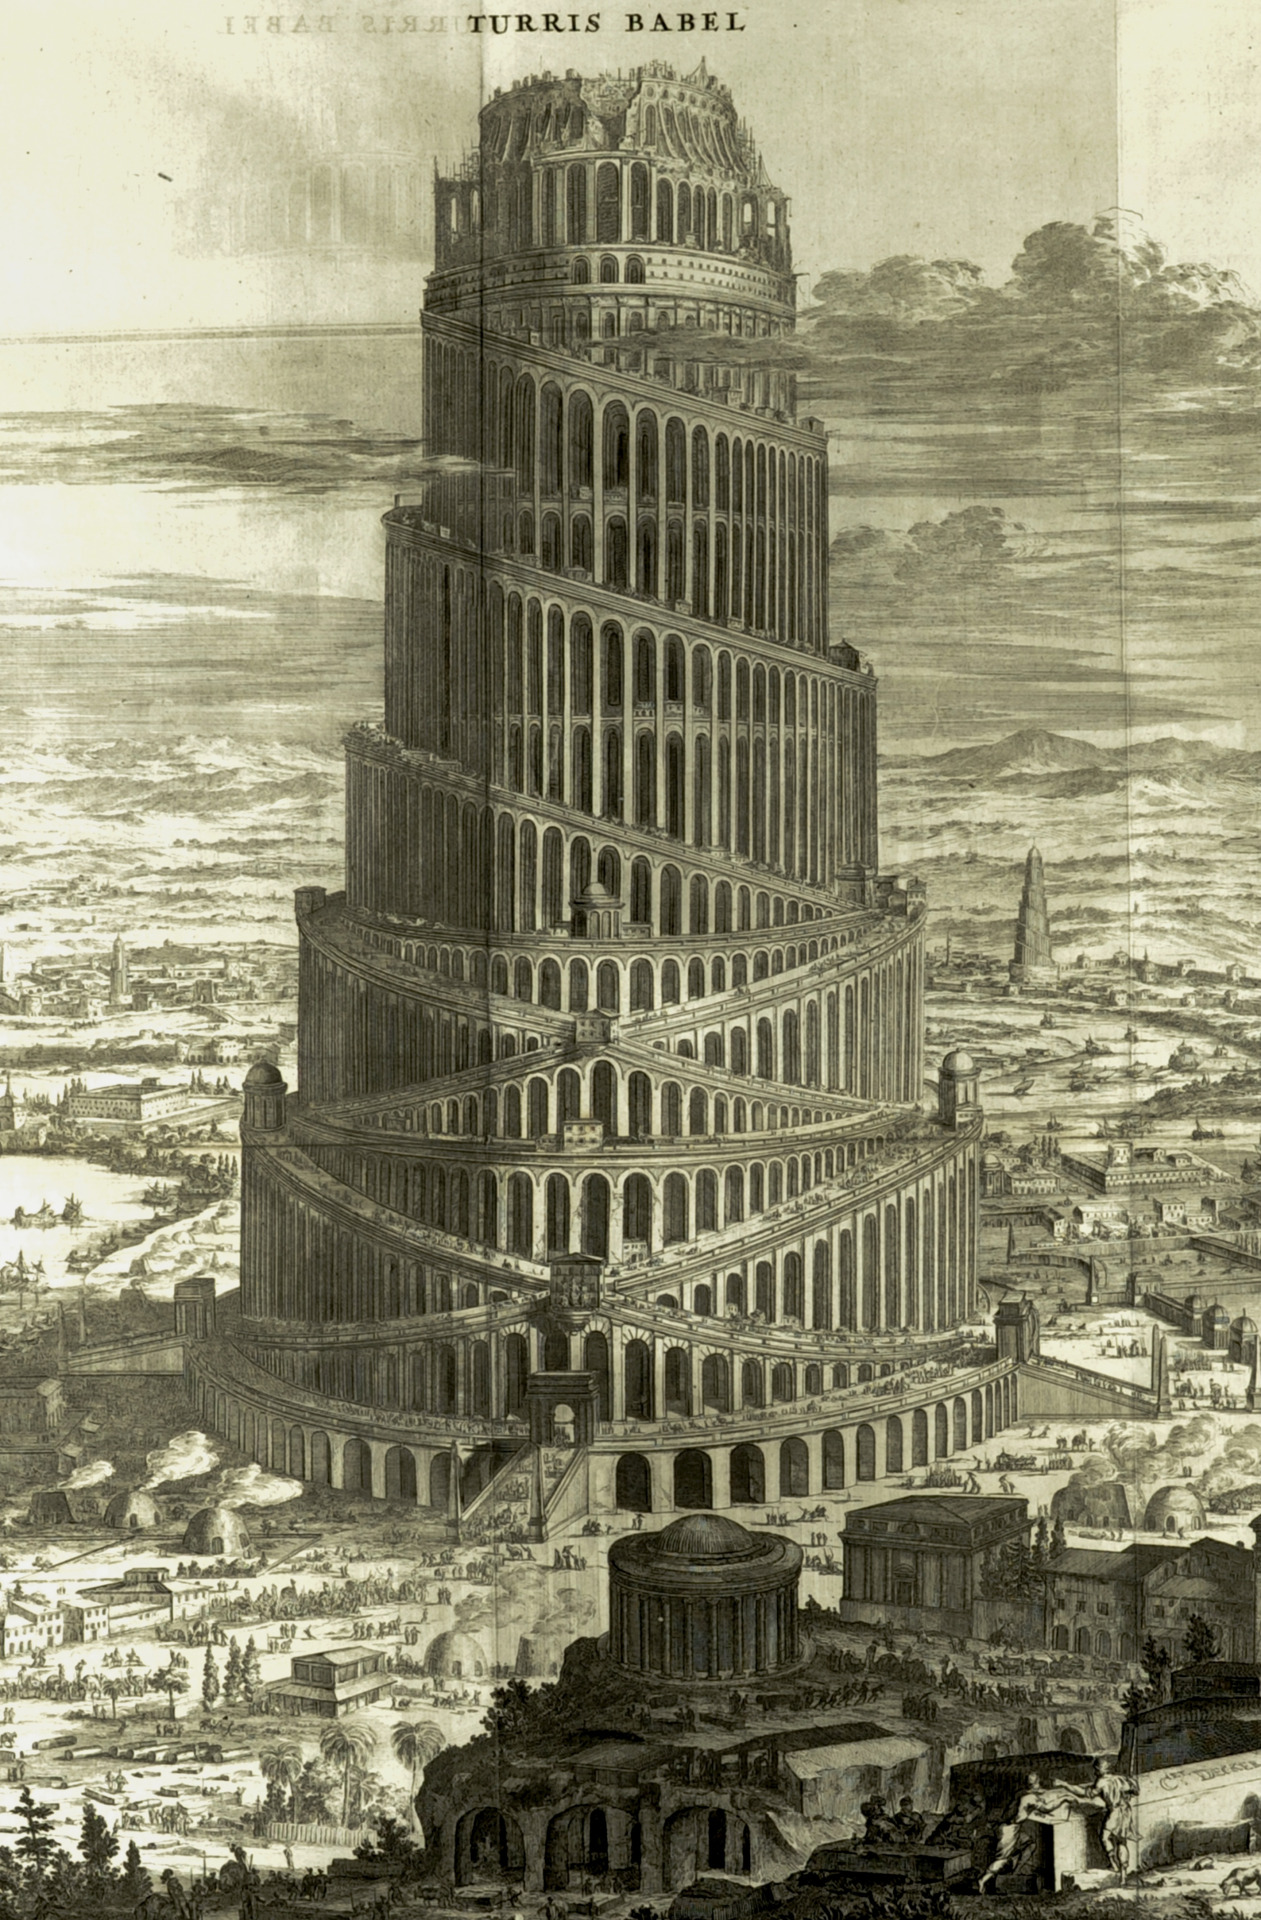 athanasius-kircher-saint-andrews-copy-of-a-large-fold-out-plate-print-engraving-detail-turris-babel-tower-of-babel-amsterdam-c-1679